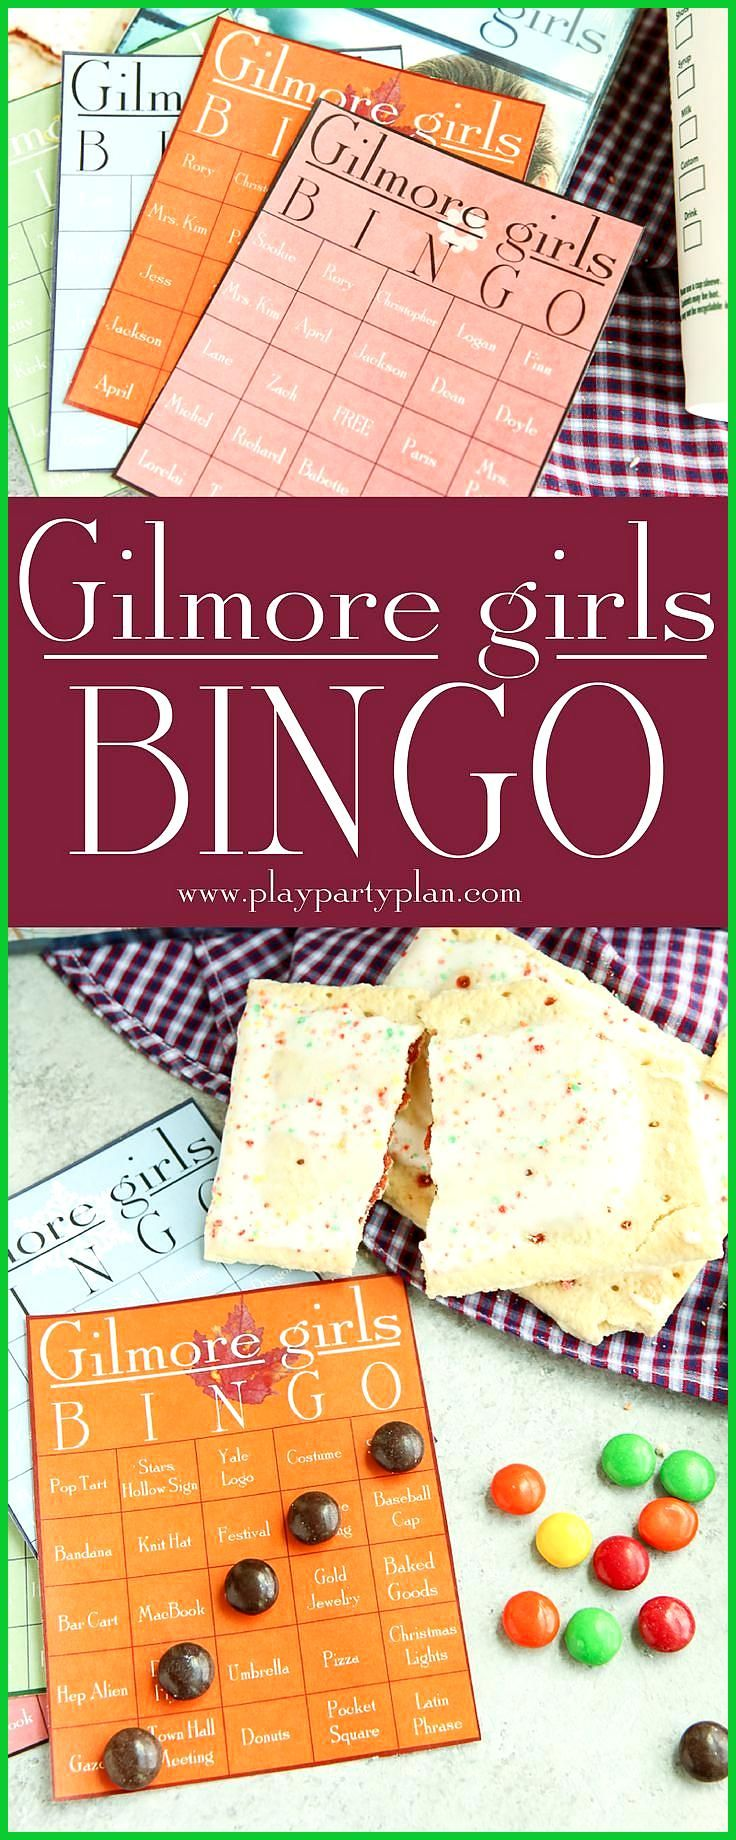 Pin by Kristina Lynn on Gilmore Girls in 2020 Gilmore